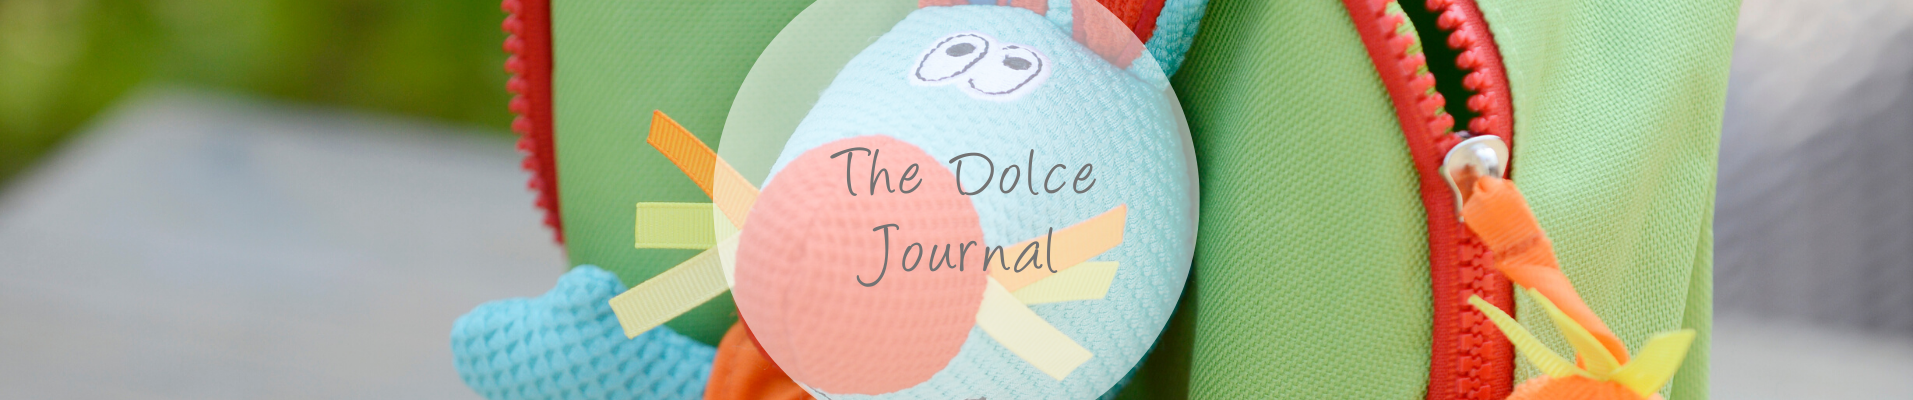 Dolce Journal-bloggen